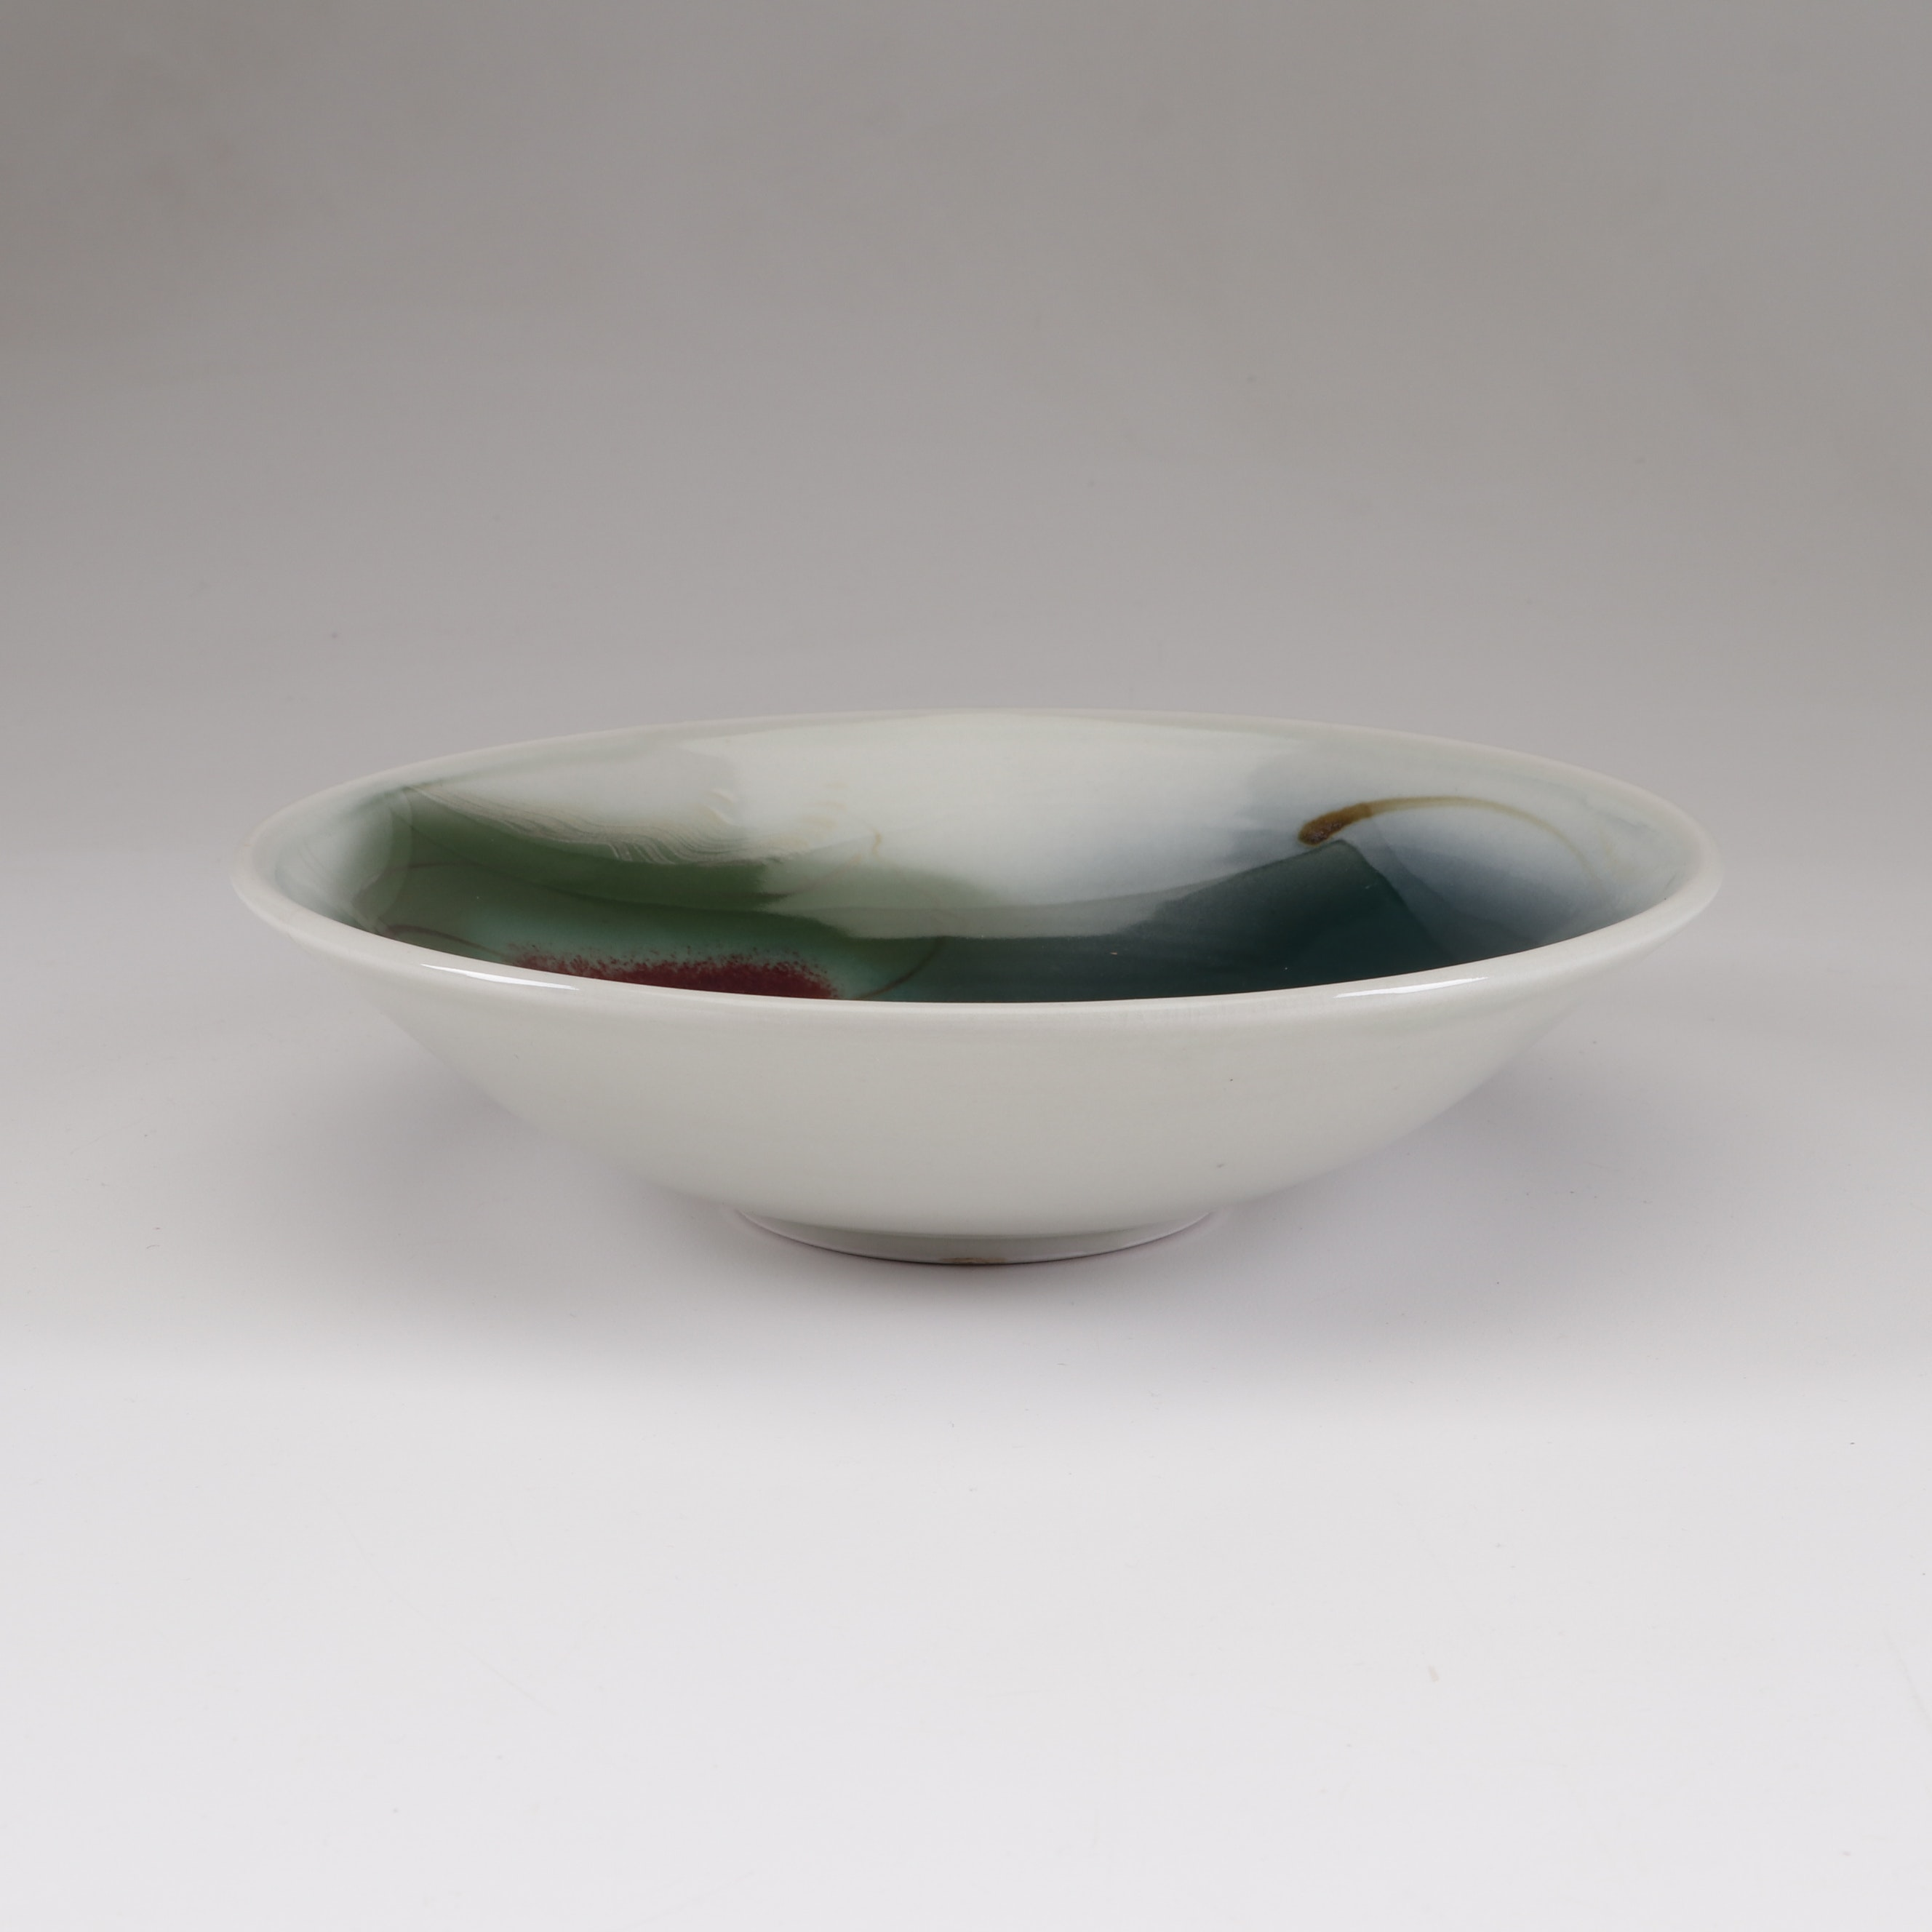 Alan Vigland Thrown Porcelain Bowl, Late 20th Century